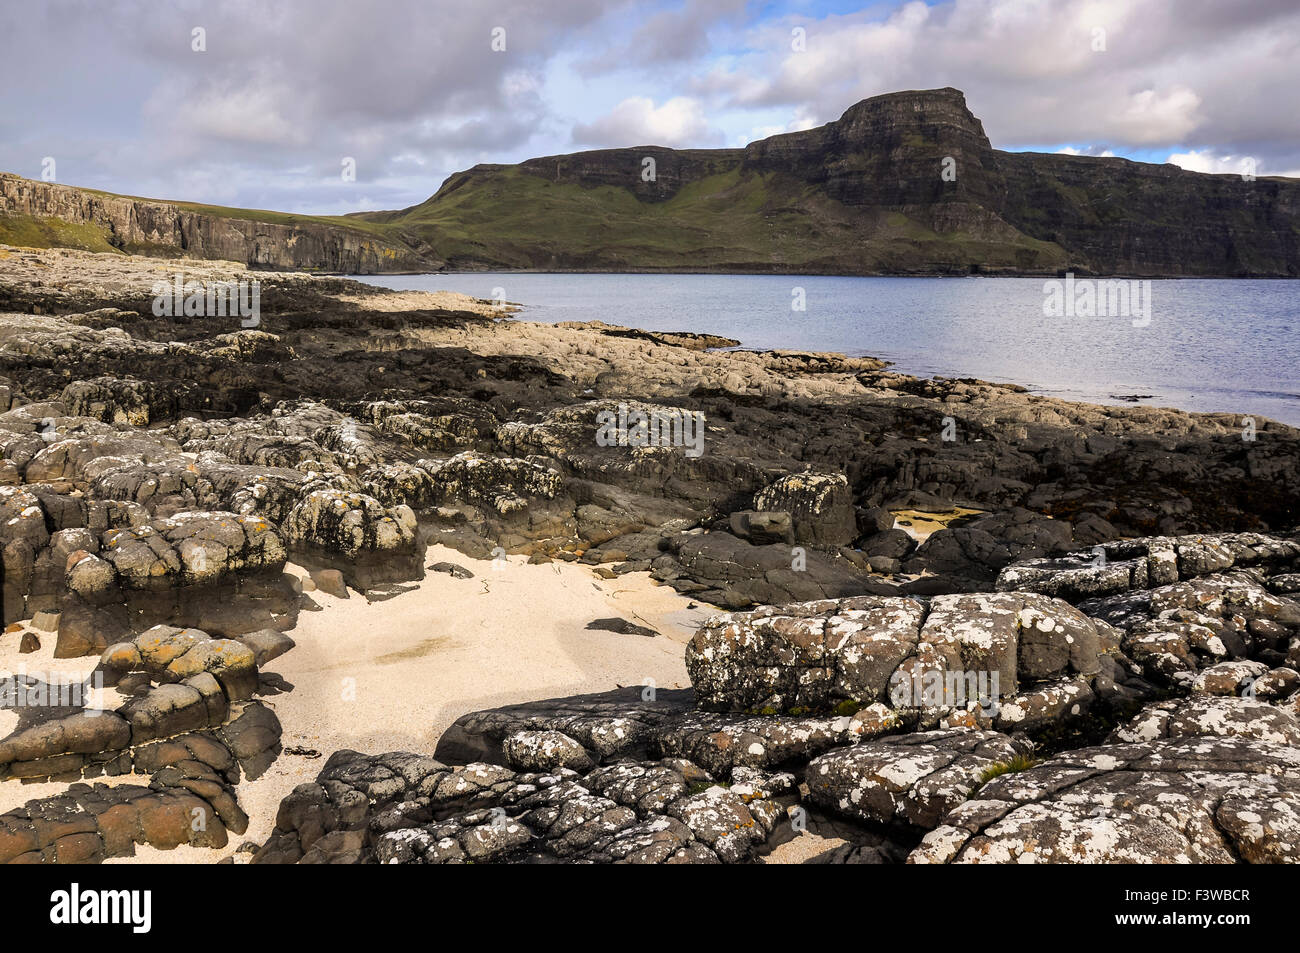 Waterstein Head on the Isle of Skye, Scotland. A small beach with pale sand in the foreground. Stock Photo